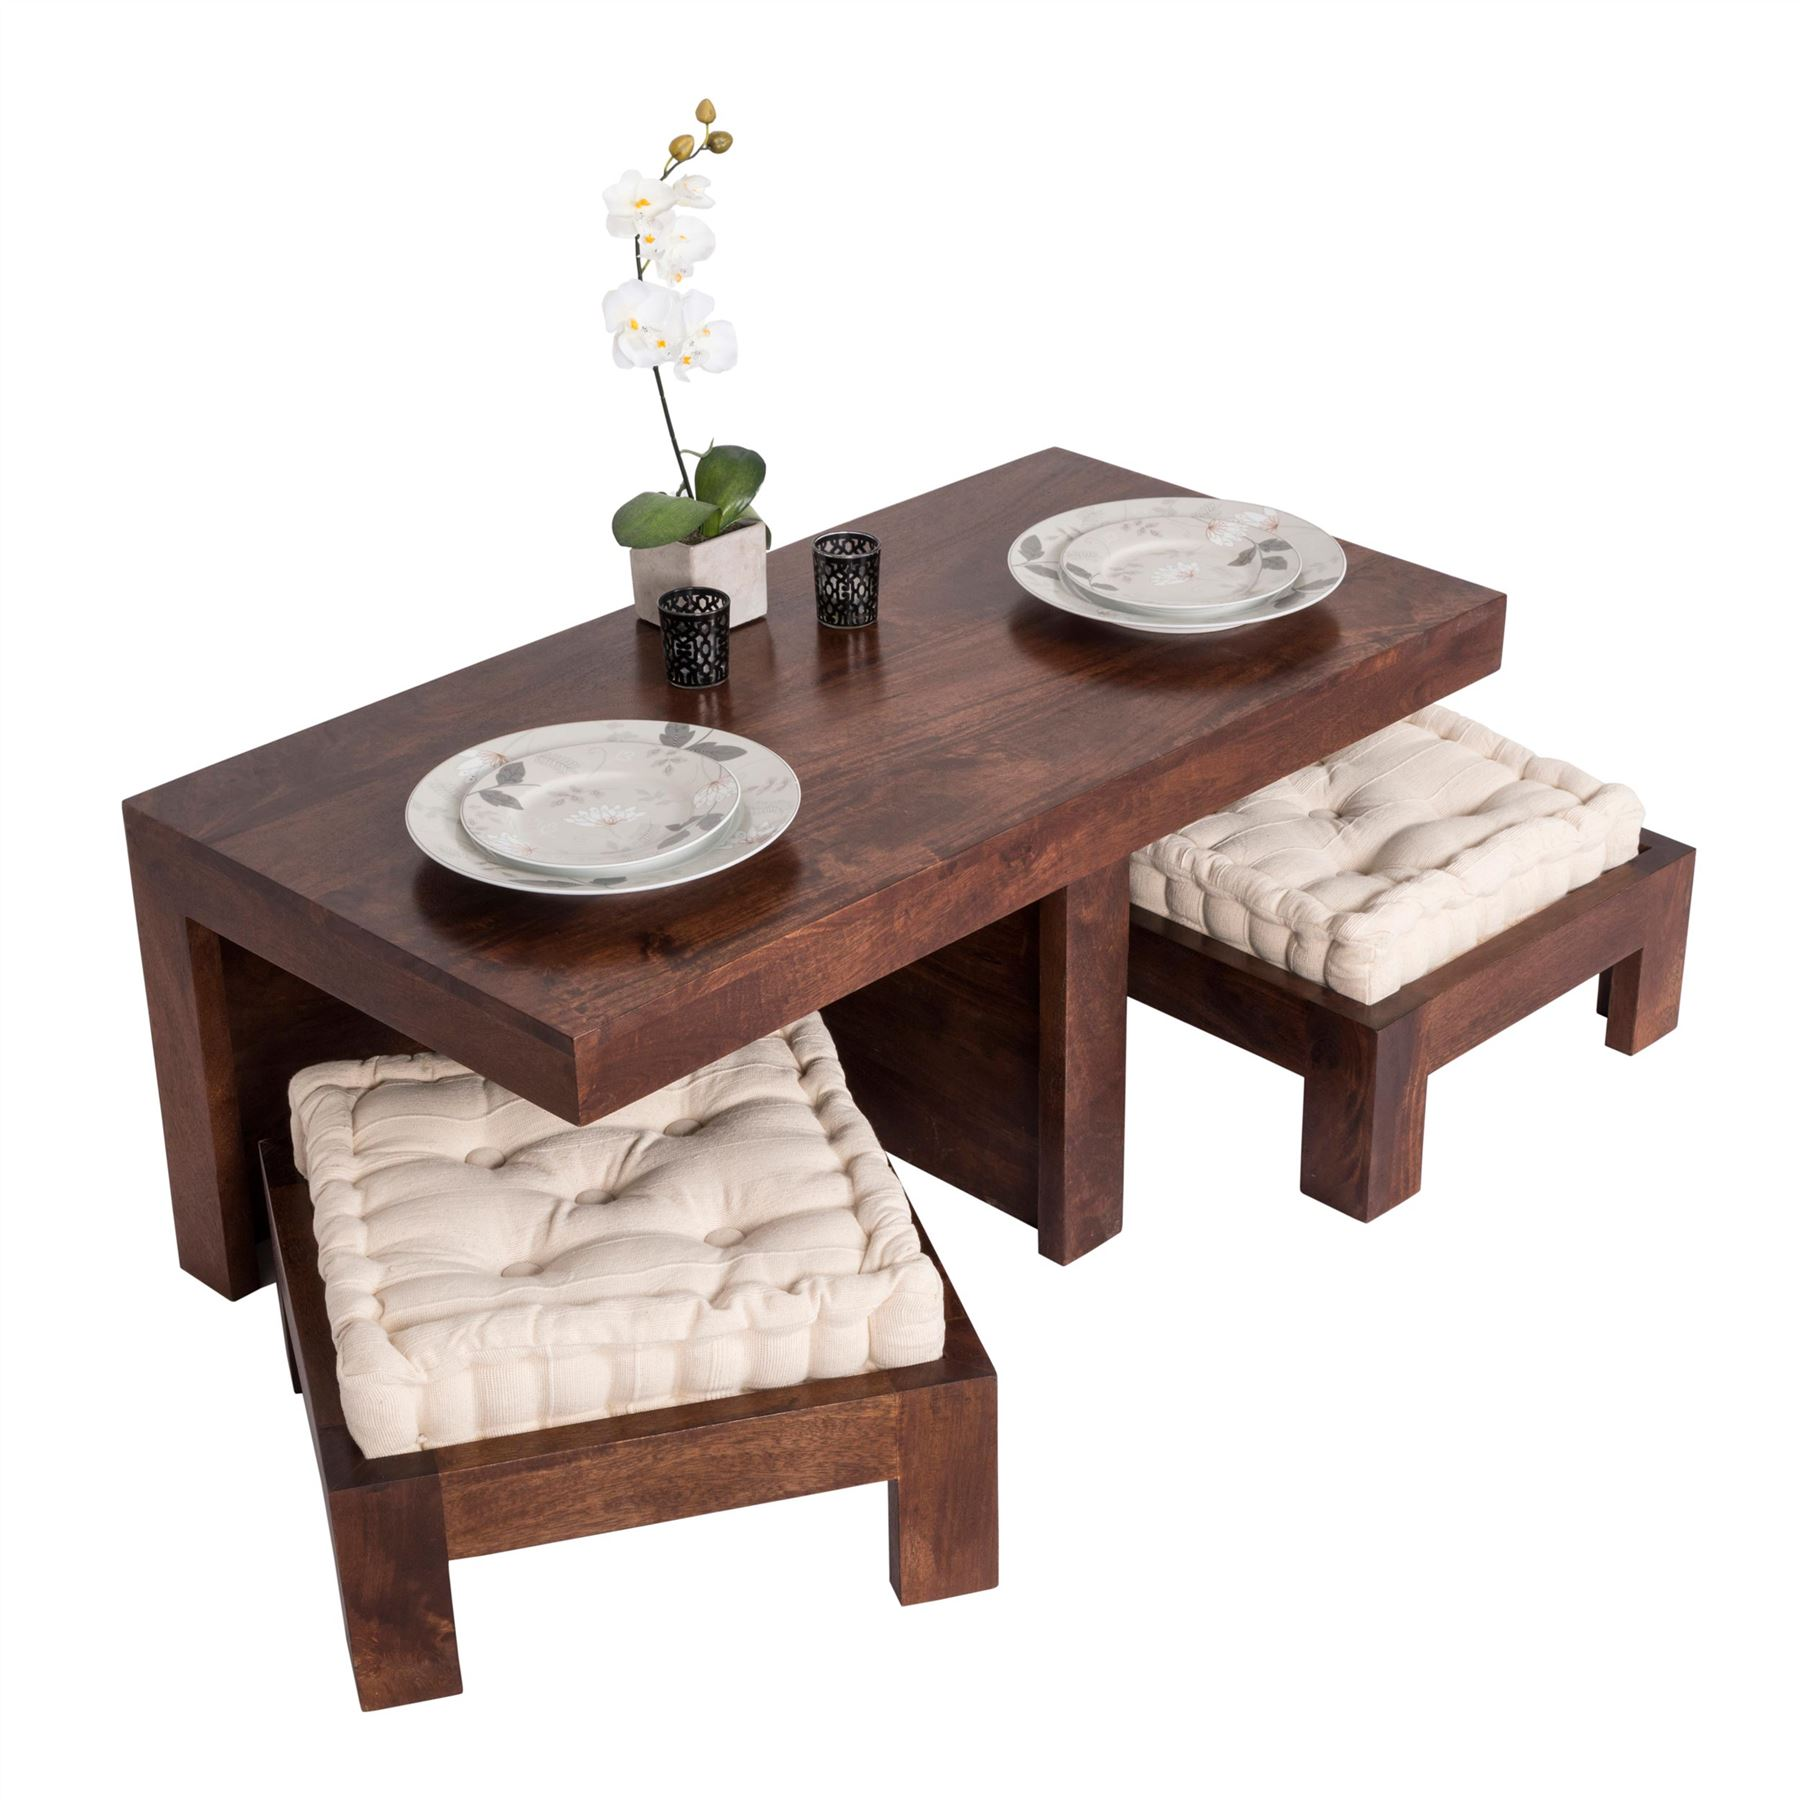 Dark Shade Dakota pact Coffee Table Set with Two Stools Seat